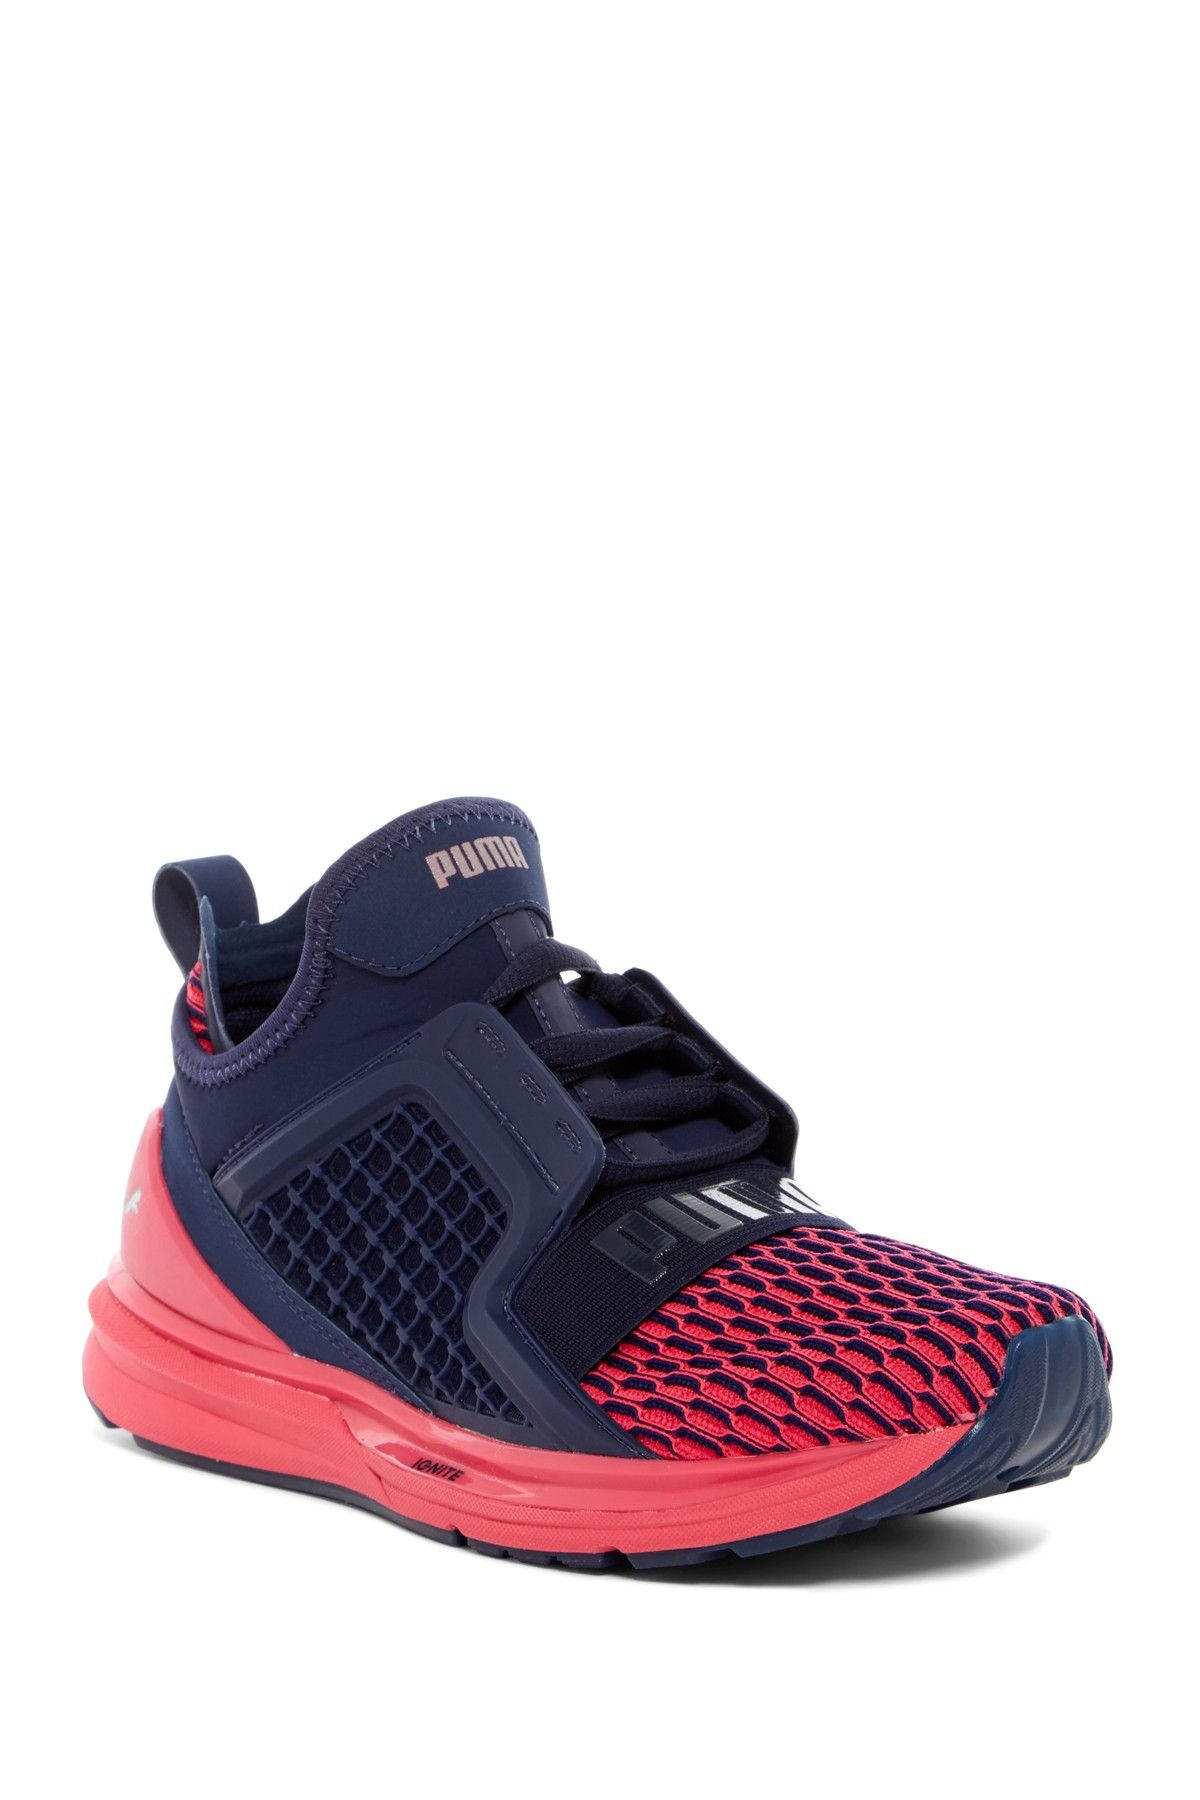 8aa26a44f0d Ignite Limitless Colorblock Sneaker